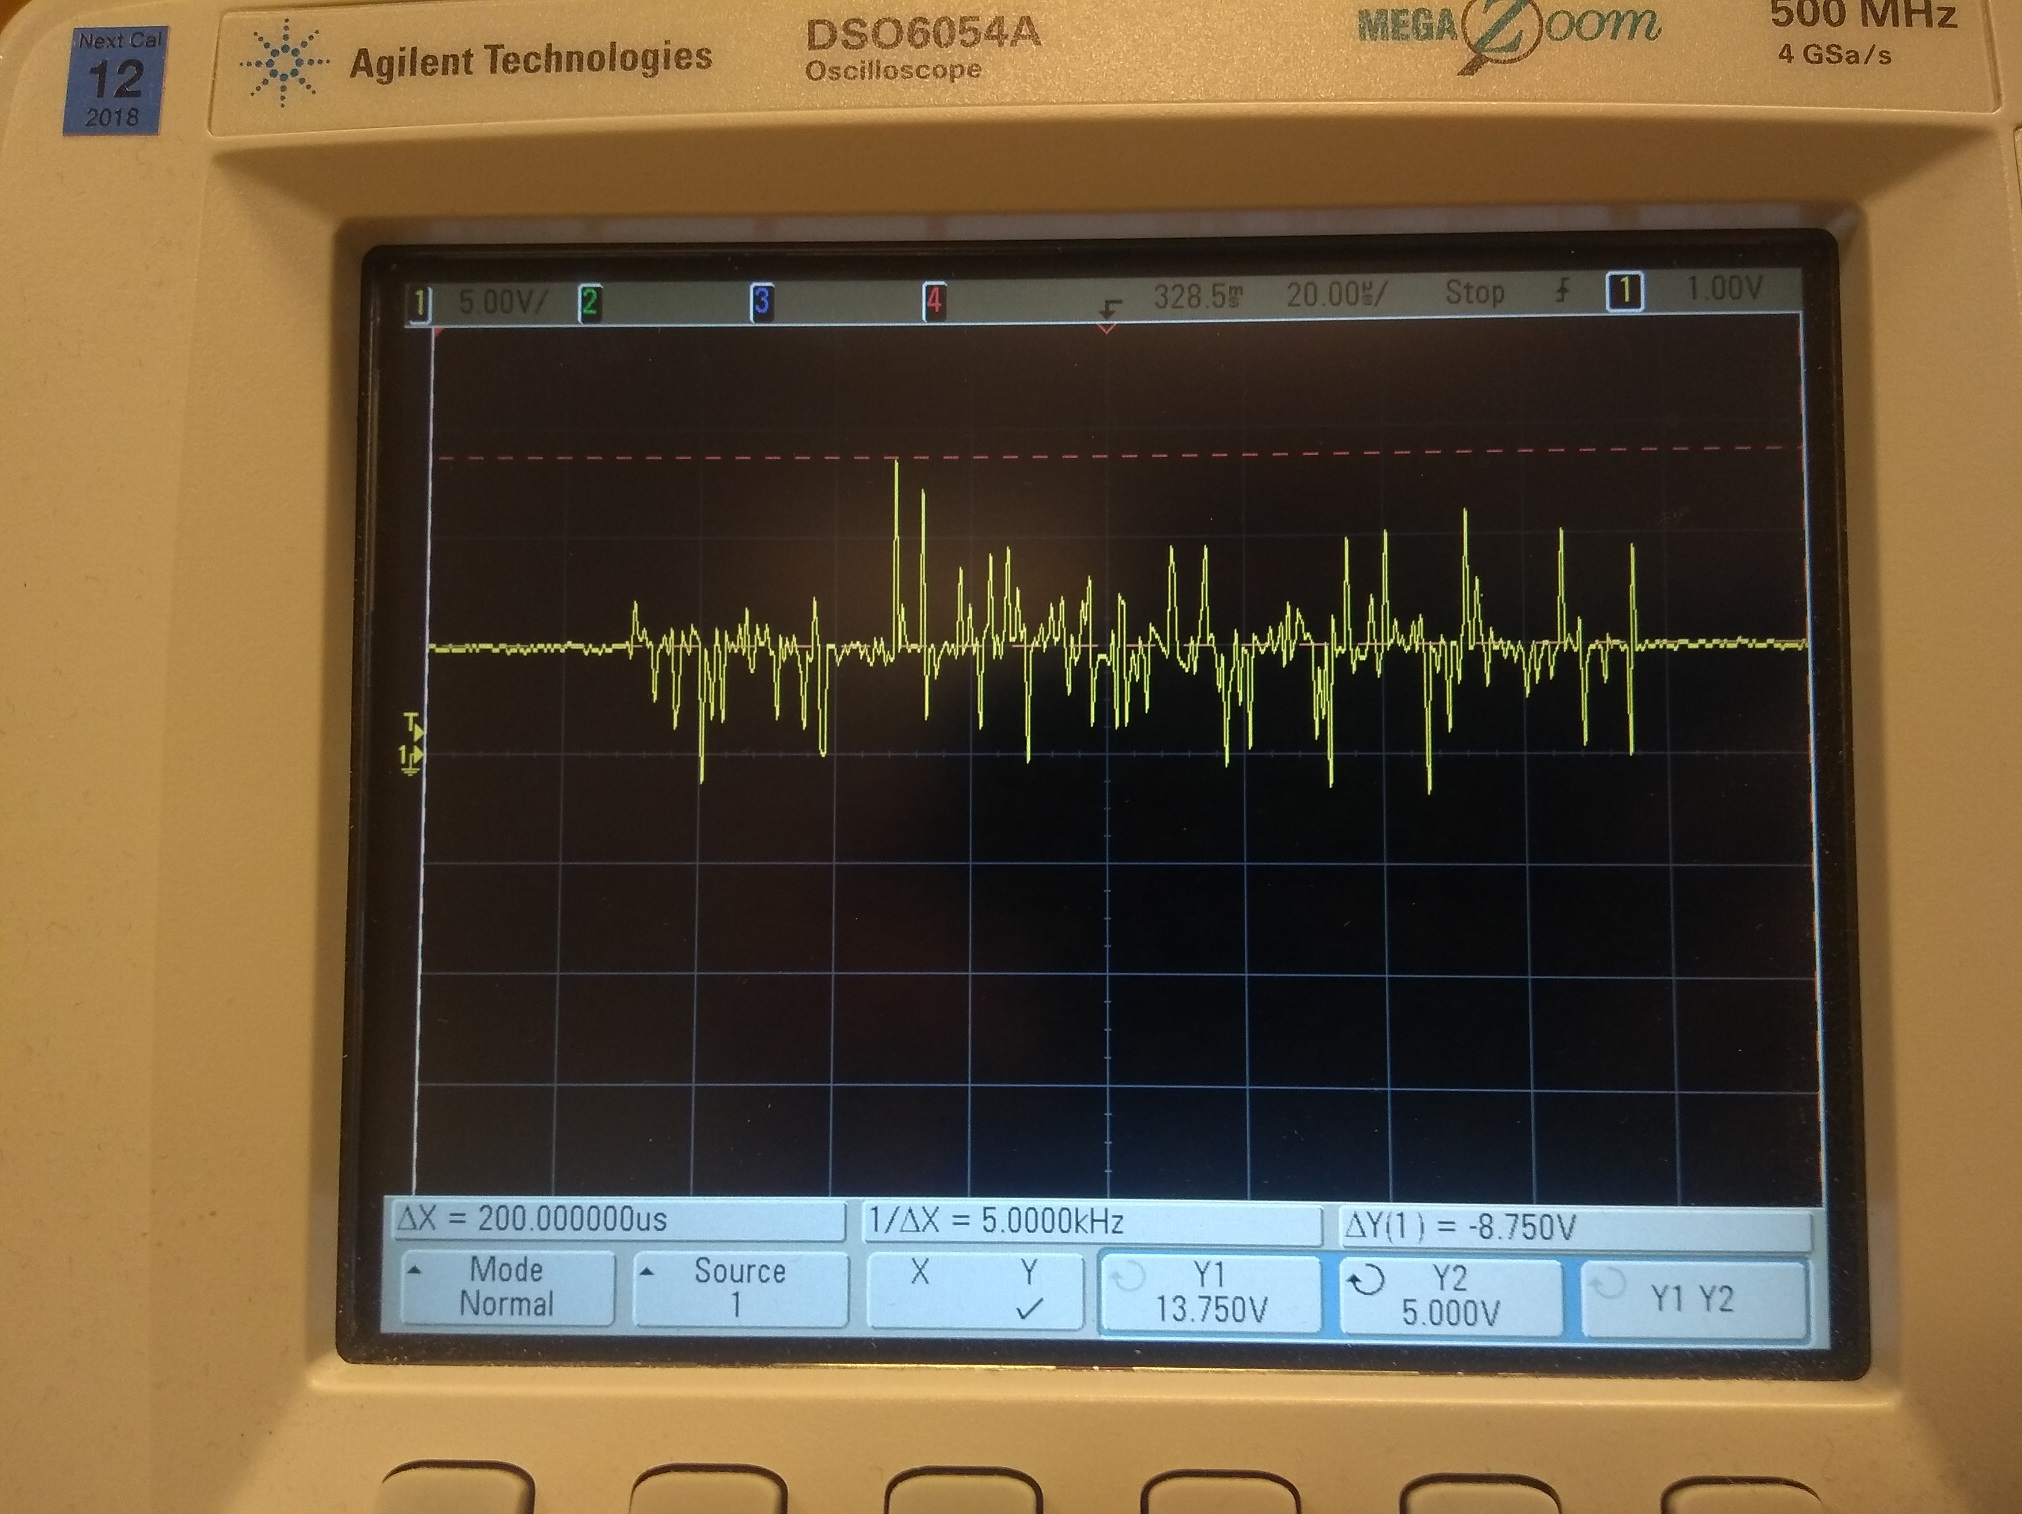 Supply Voltage Of 5v The Wbo Circuit And The Image Of The Waveform